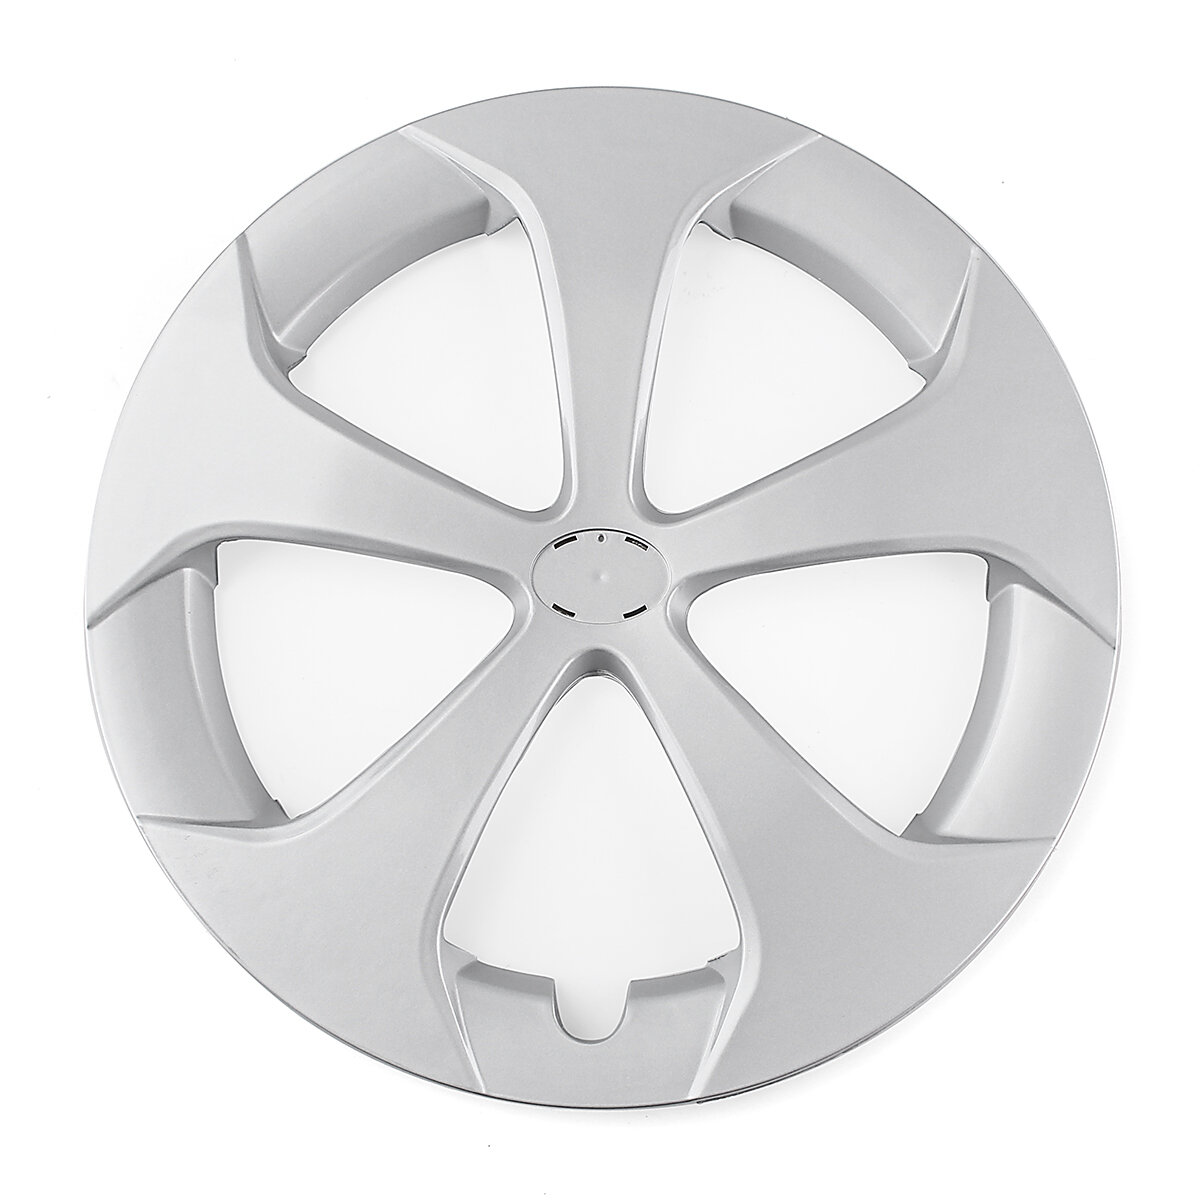 Best Tires For Toyota Prius: 40.8cm Silver Plastic Car Wheel Tire Cover For Toyota